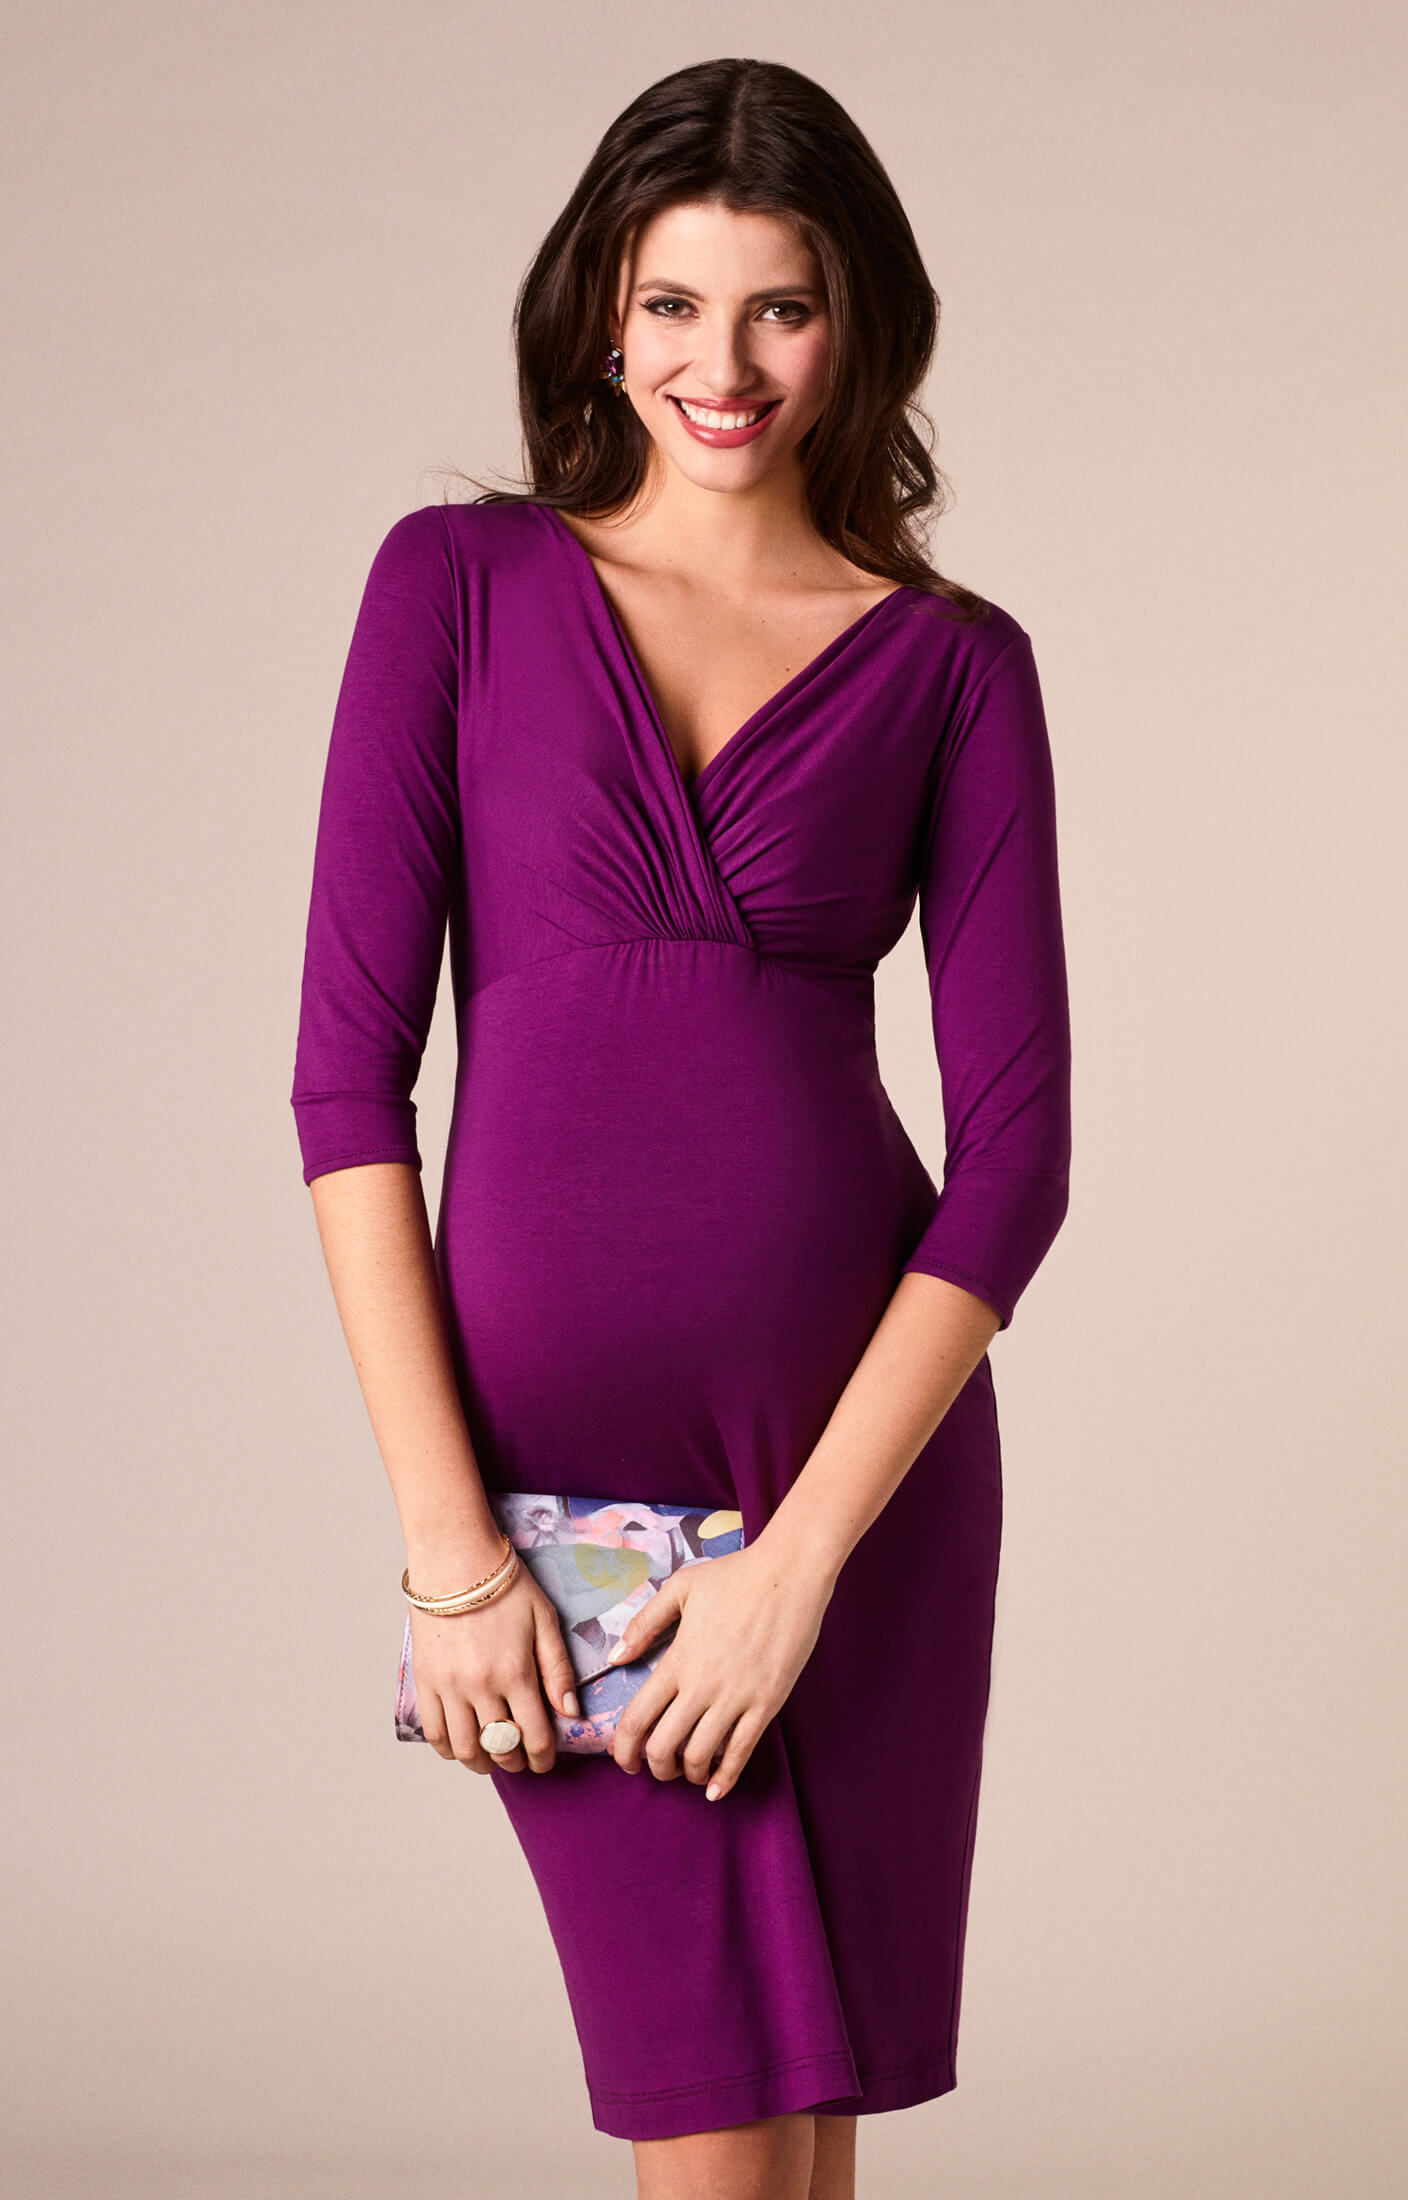 Josephine maternity dress berry maternity wedding dresses josephine maternity dress berry by tiffany rose ombrellifo Gallery